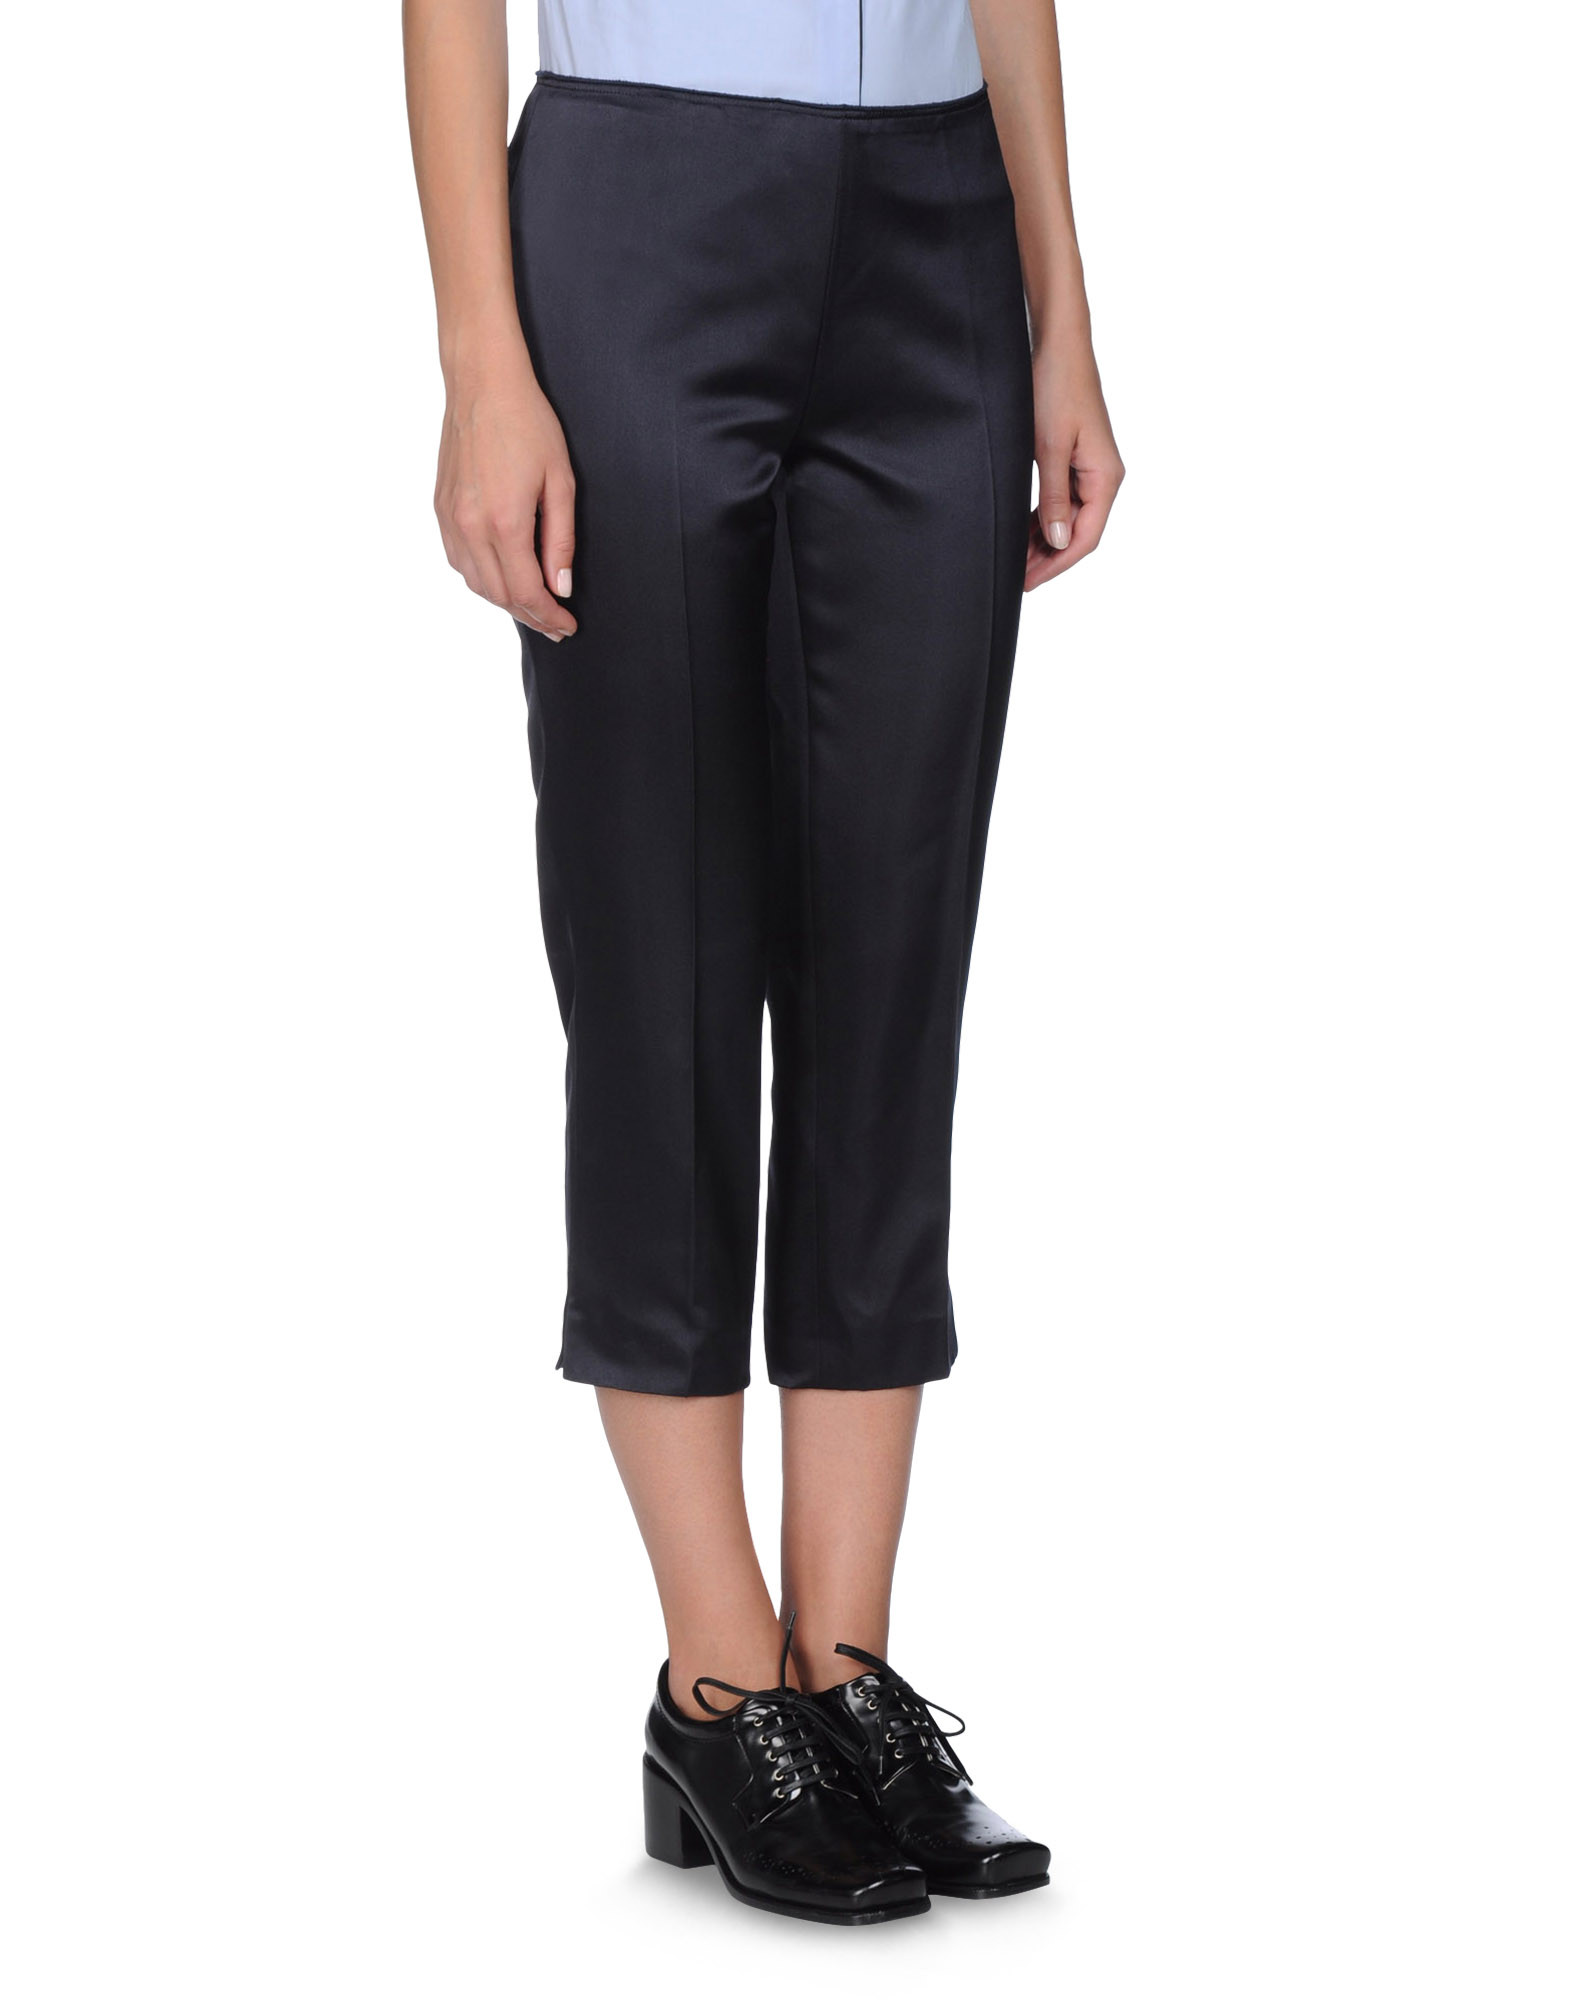 Tailored Trousers - JIL SANDER NAVY Online Store